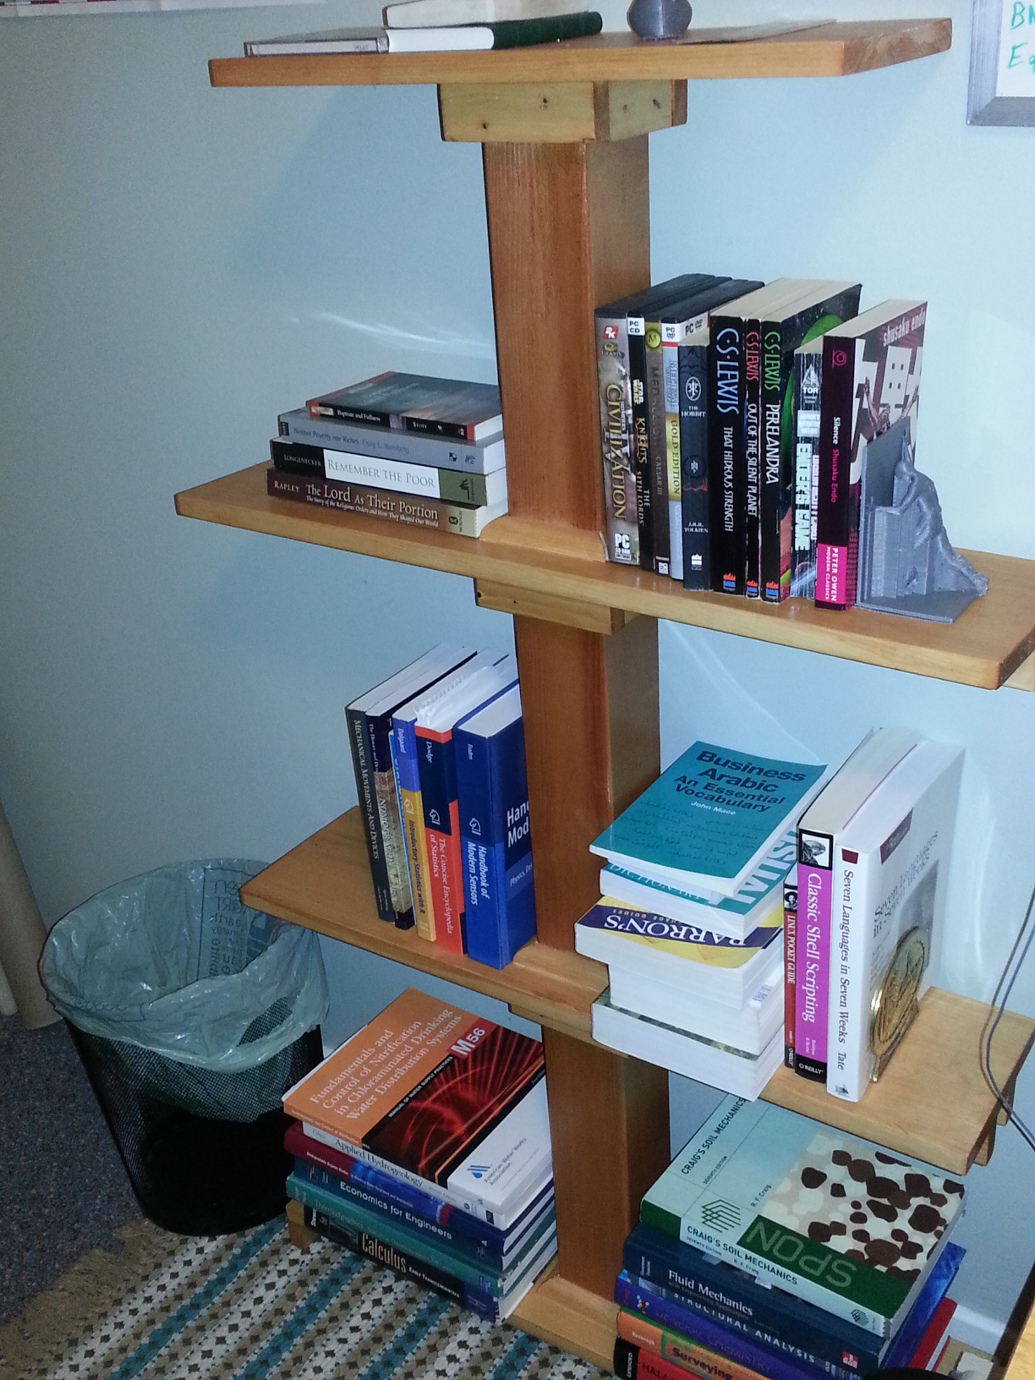 Book-shelf photo